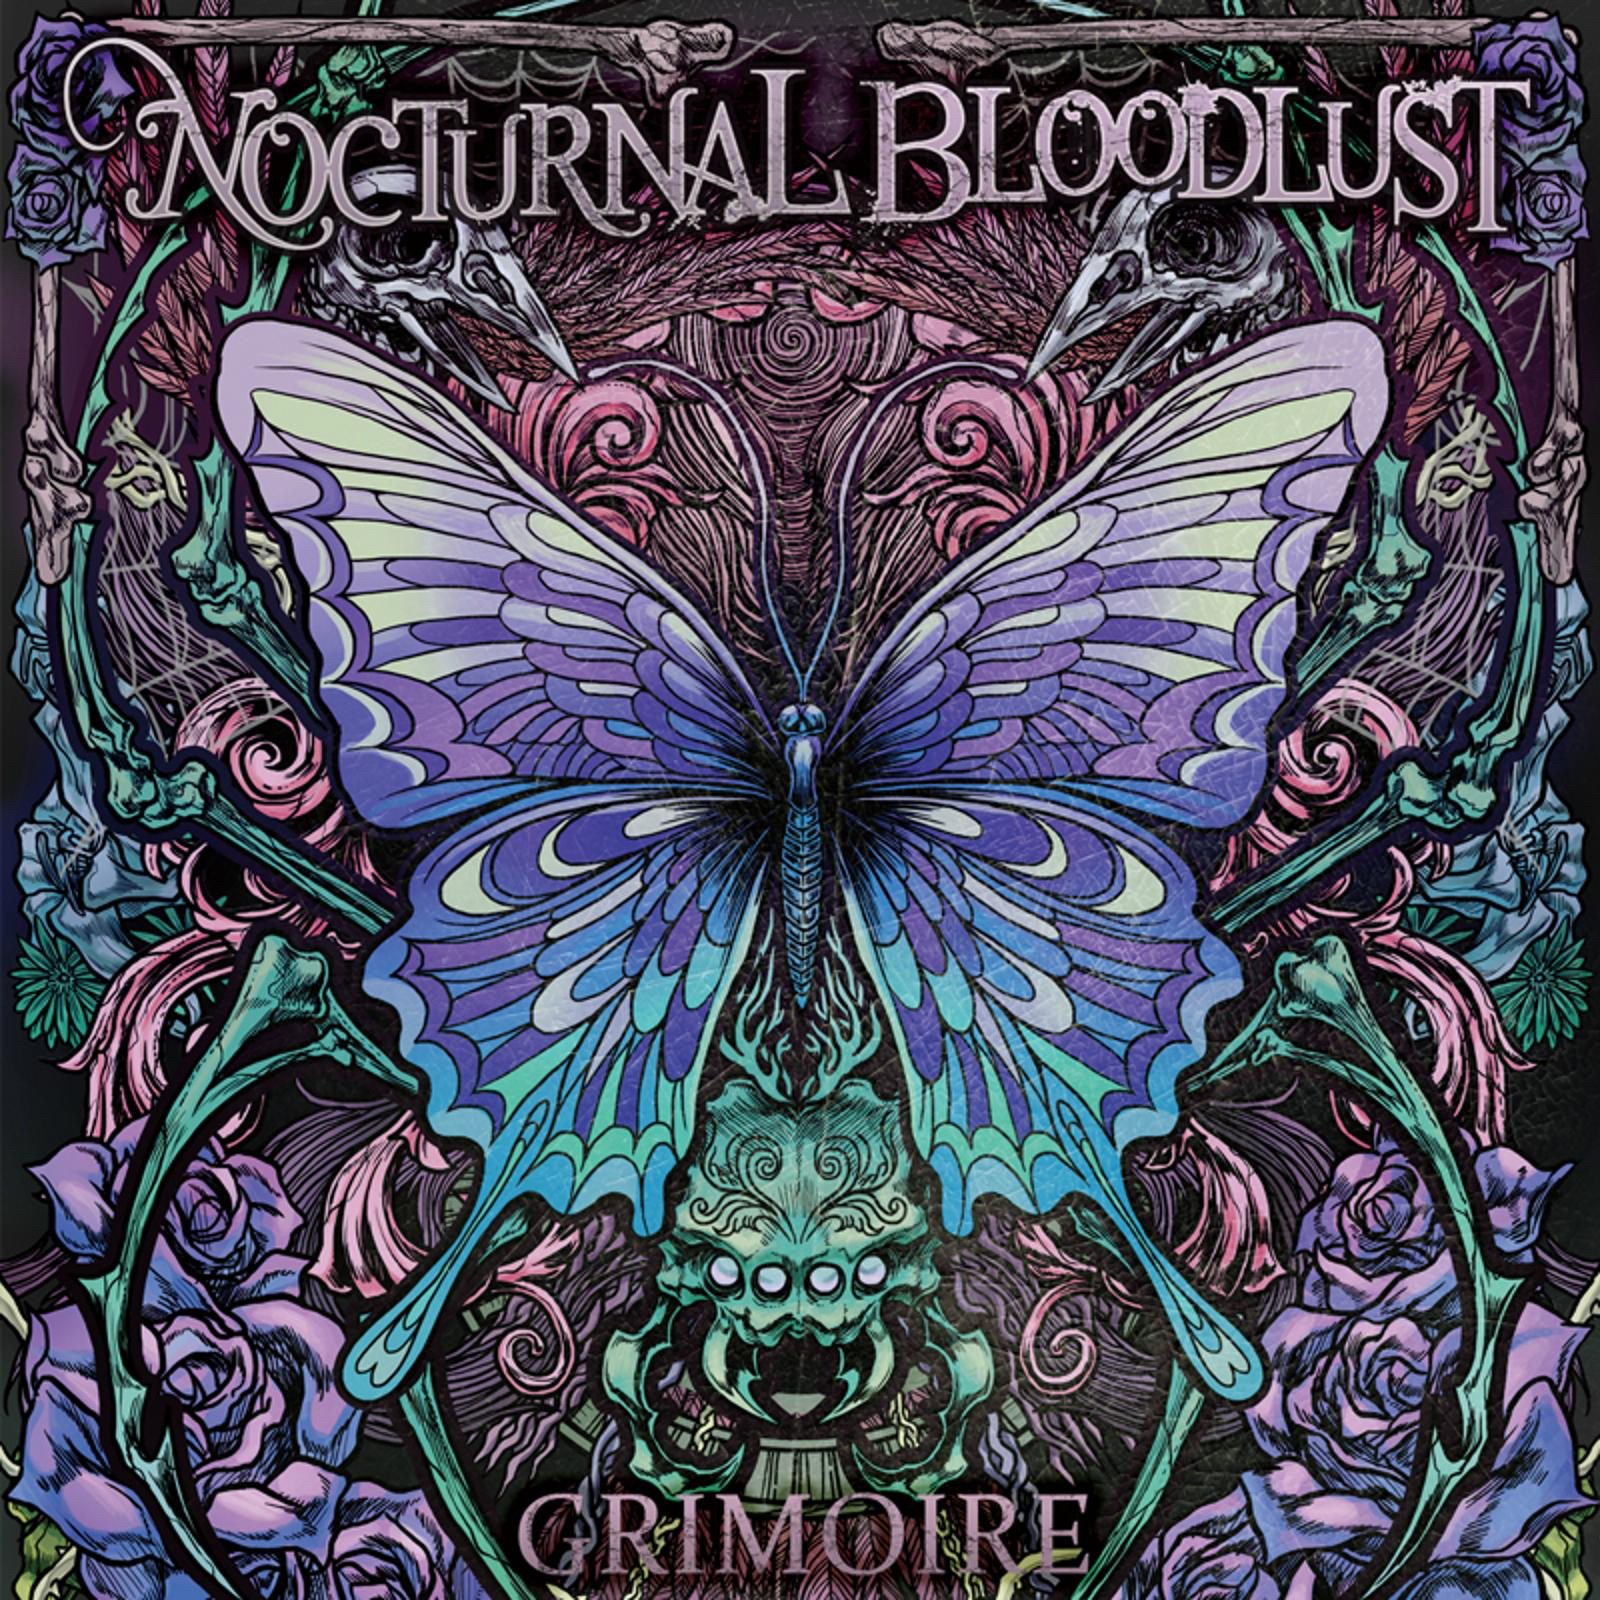 Nocturnal Bloodlust - Grimoire (2013)